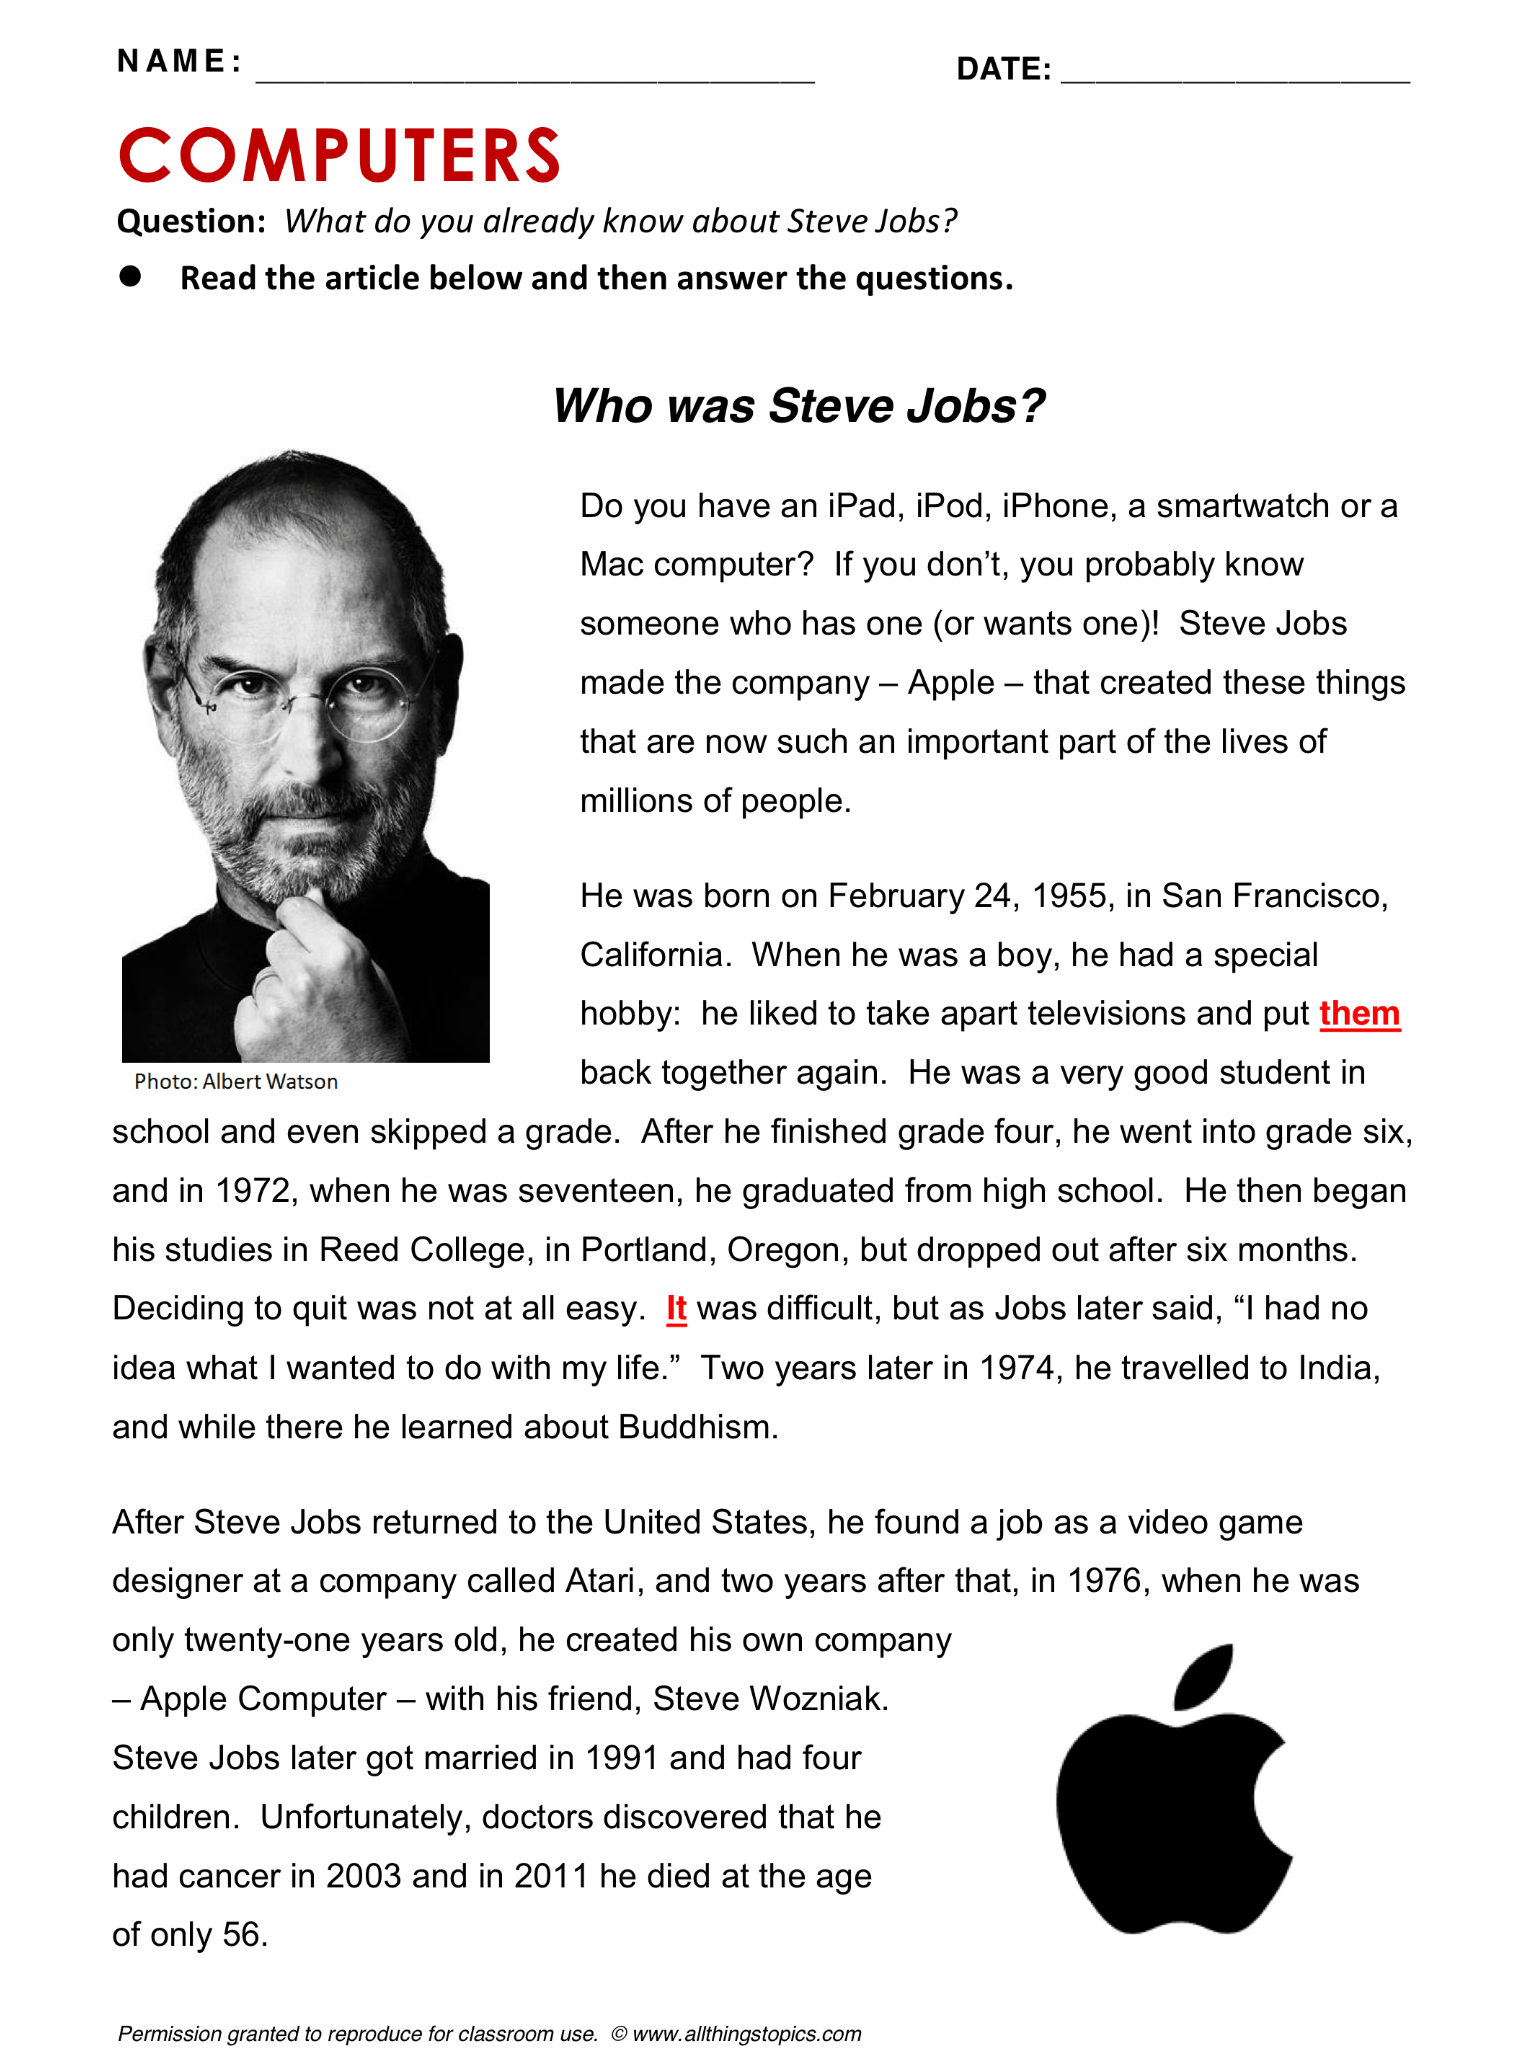 Steve Jobs Computers And Internet English Learning English Vocabulary Esl English Phrases